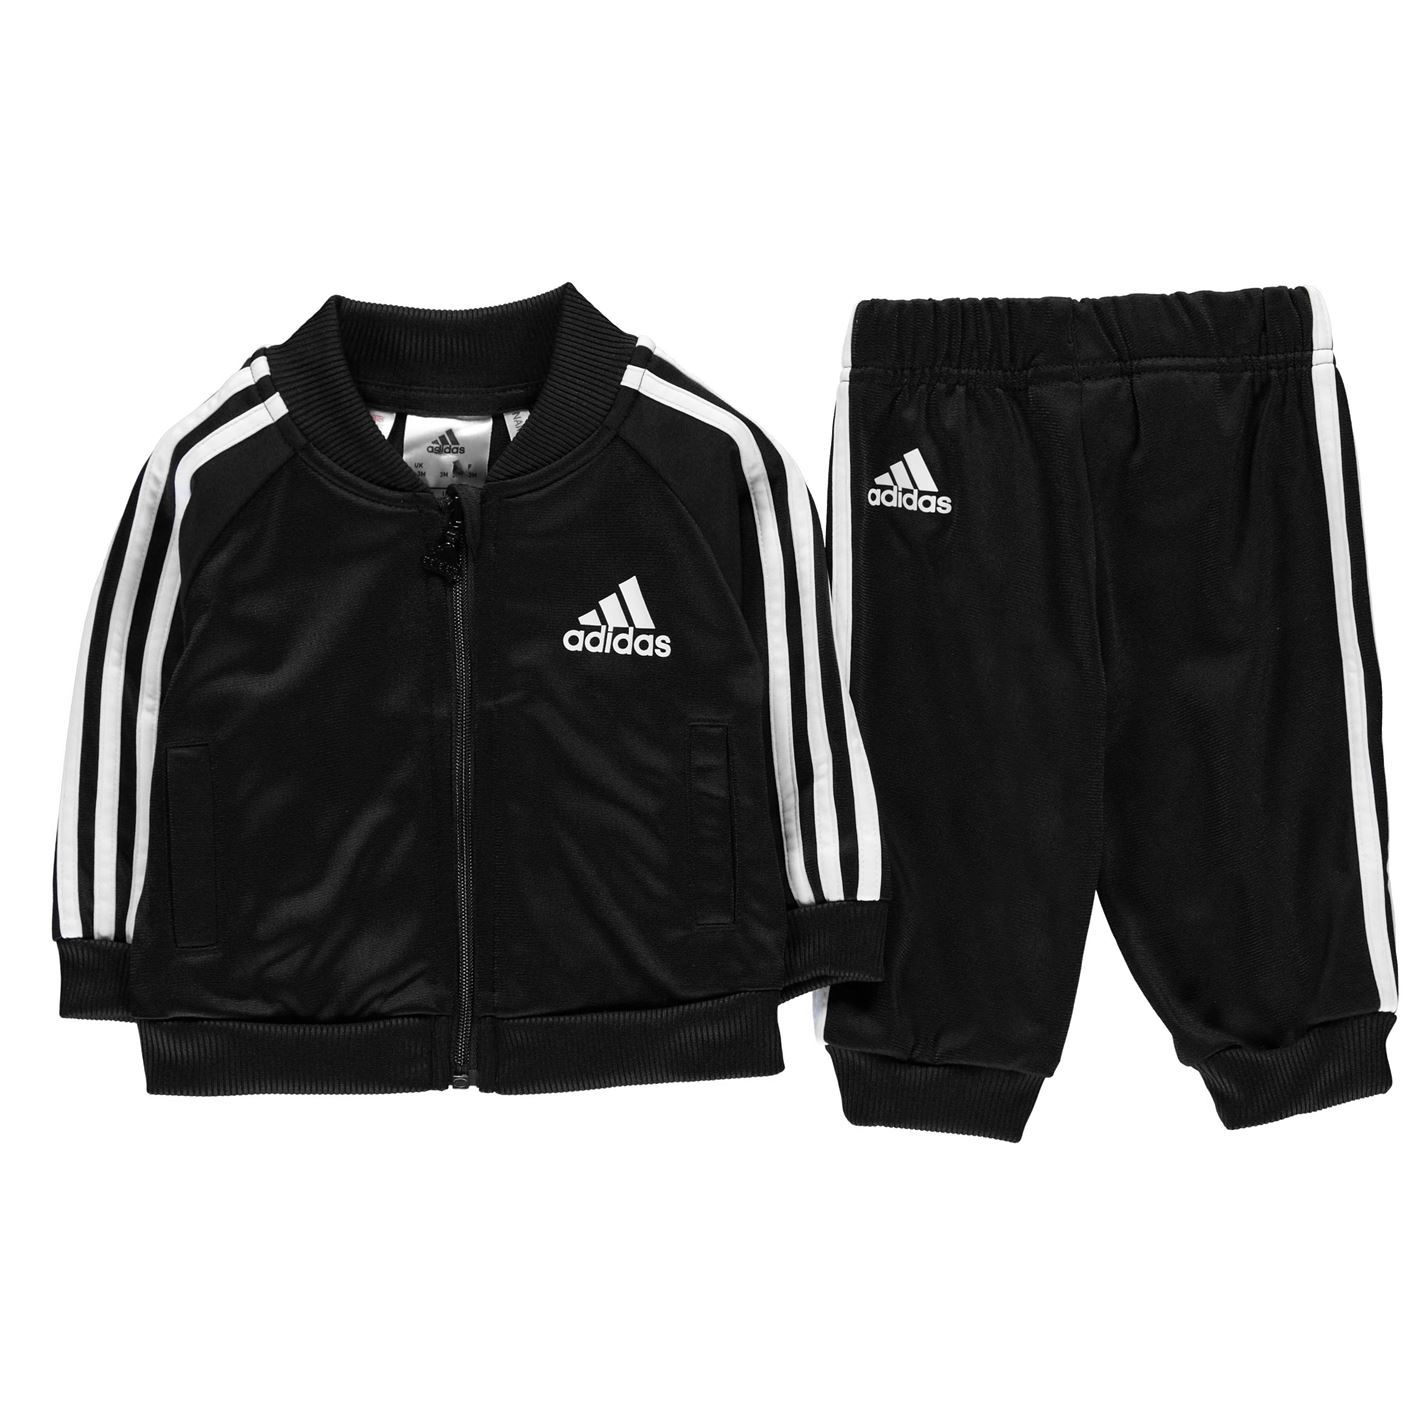 a3bdb7d8b6ee adidas Kids Boys 3 Stripe Tracksuit Baby Poly Zip Full Drawstring  Elasticated